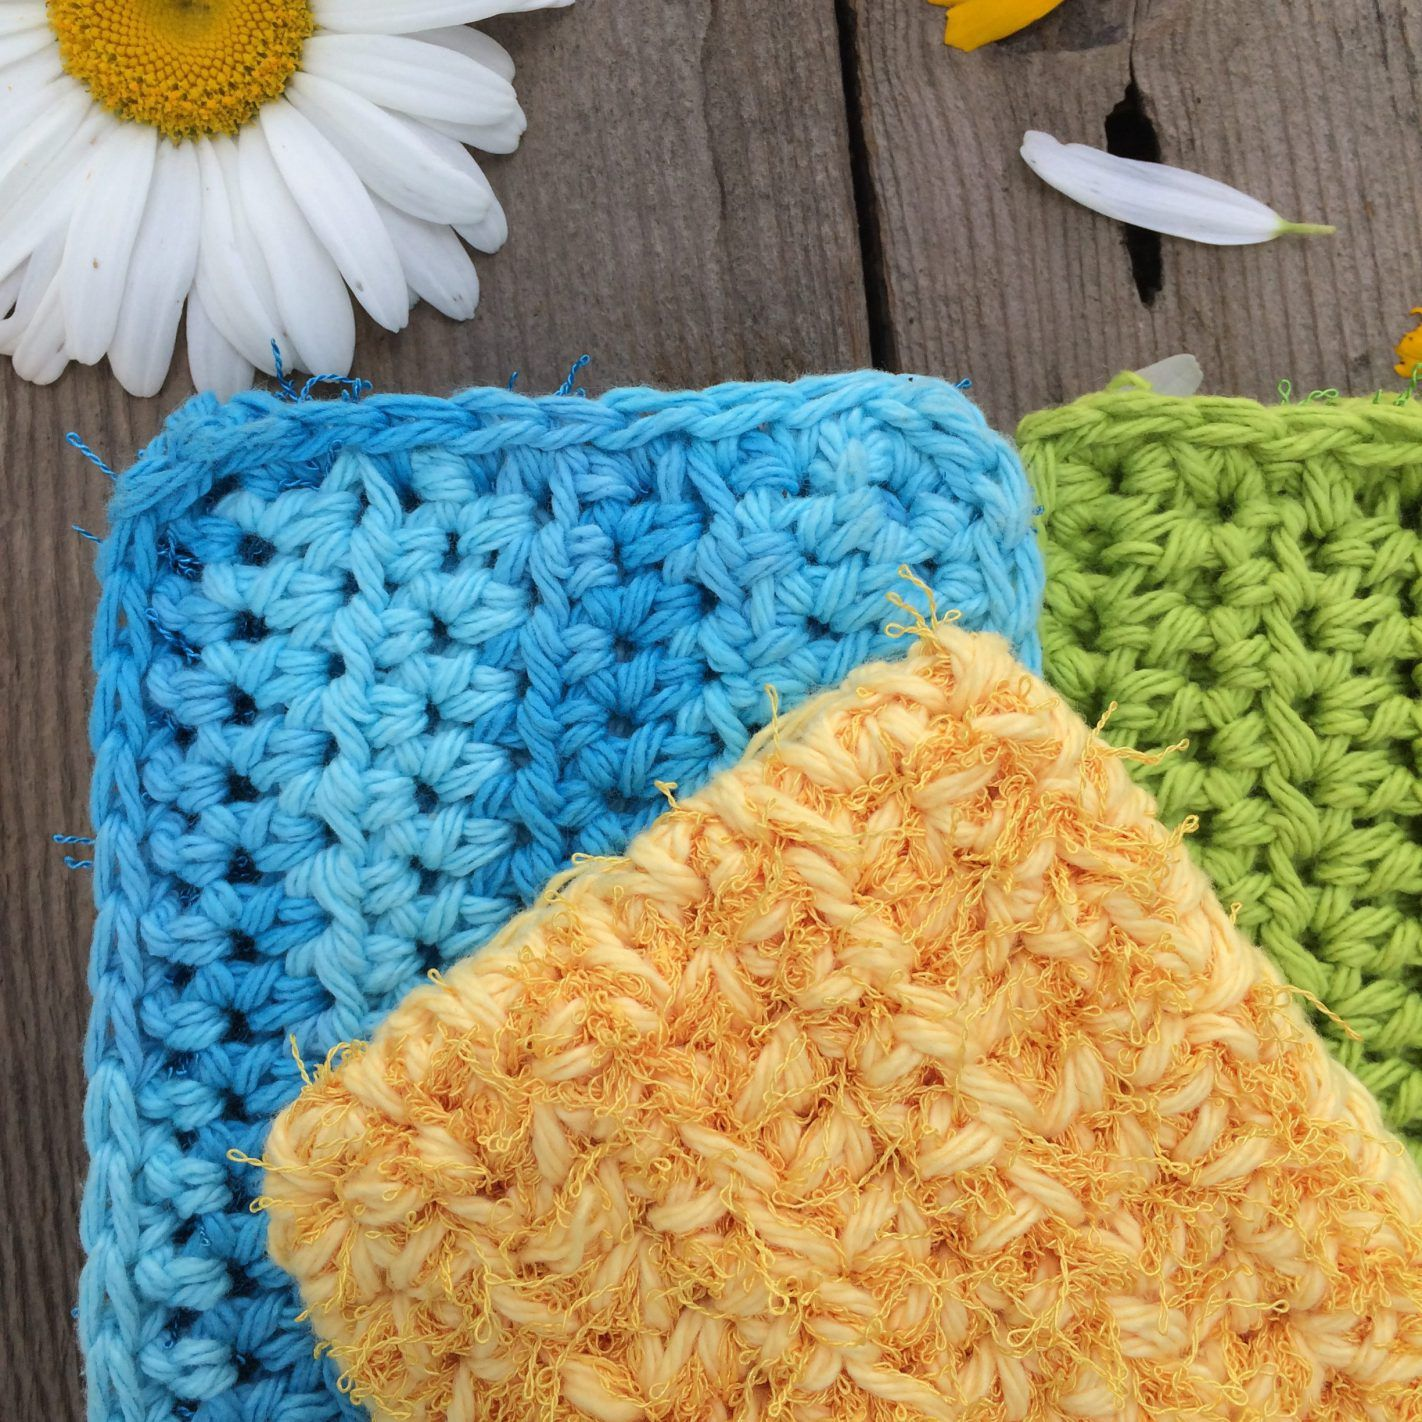 Crochet Kitchen Scrubby Pattern: Quick and easy pattern for ...